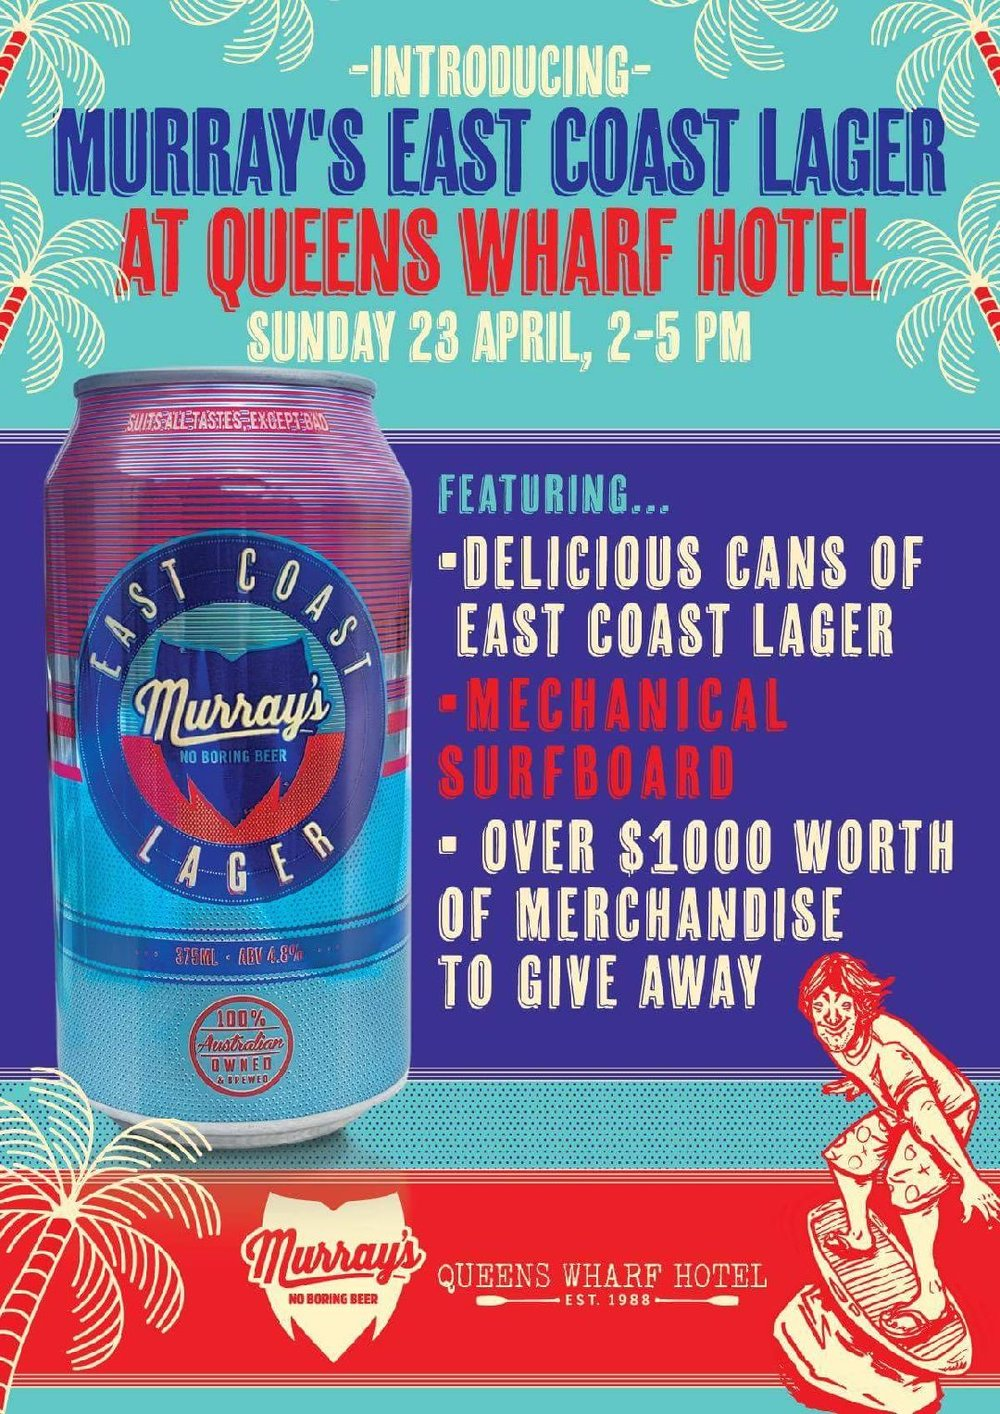 murrays queens wharf hotel east coast lager